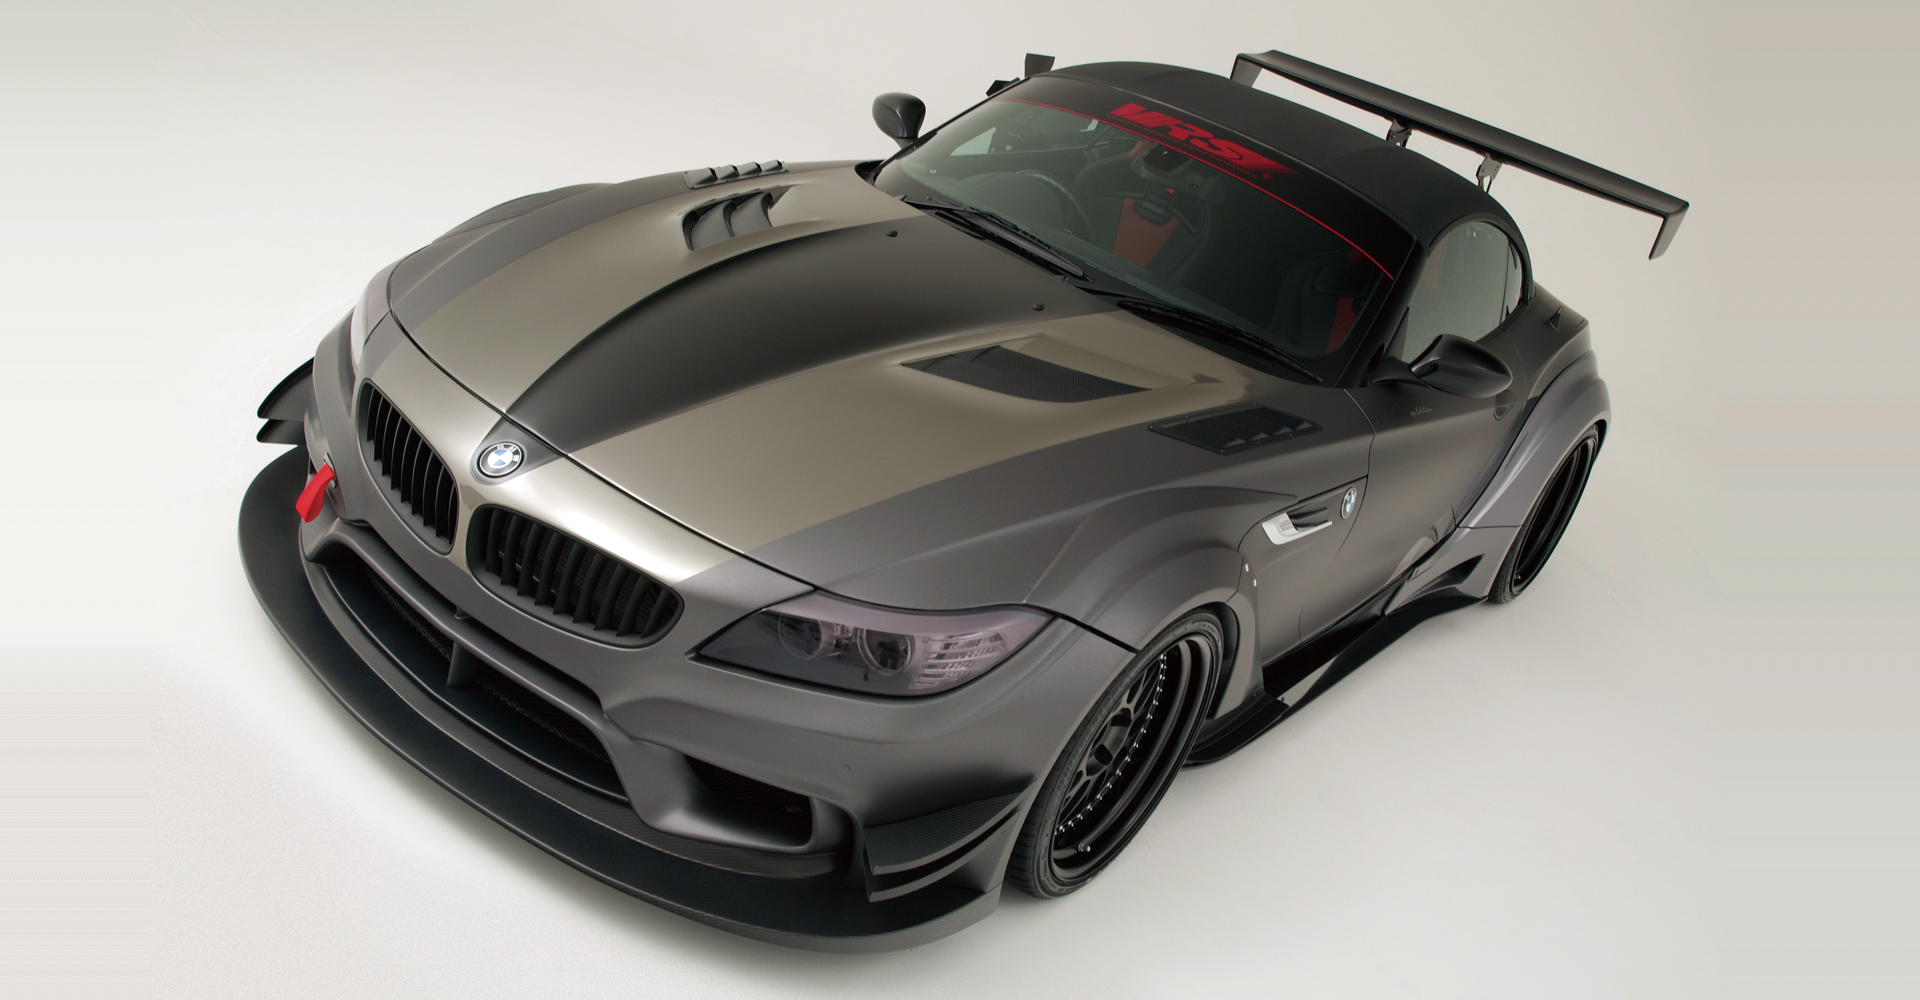 Vrs Bmw E89 Z4 Gt Anniversary Edition Wide Body Kit